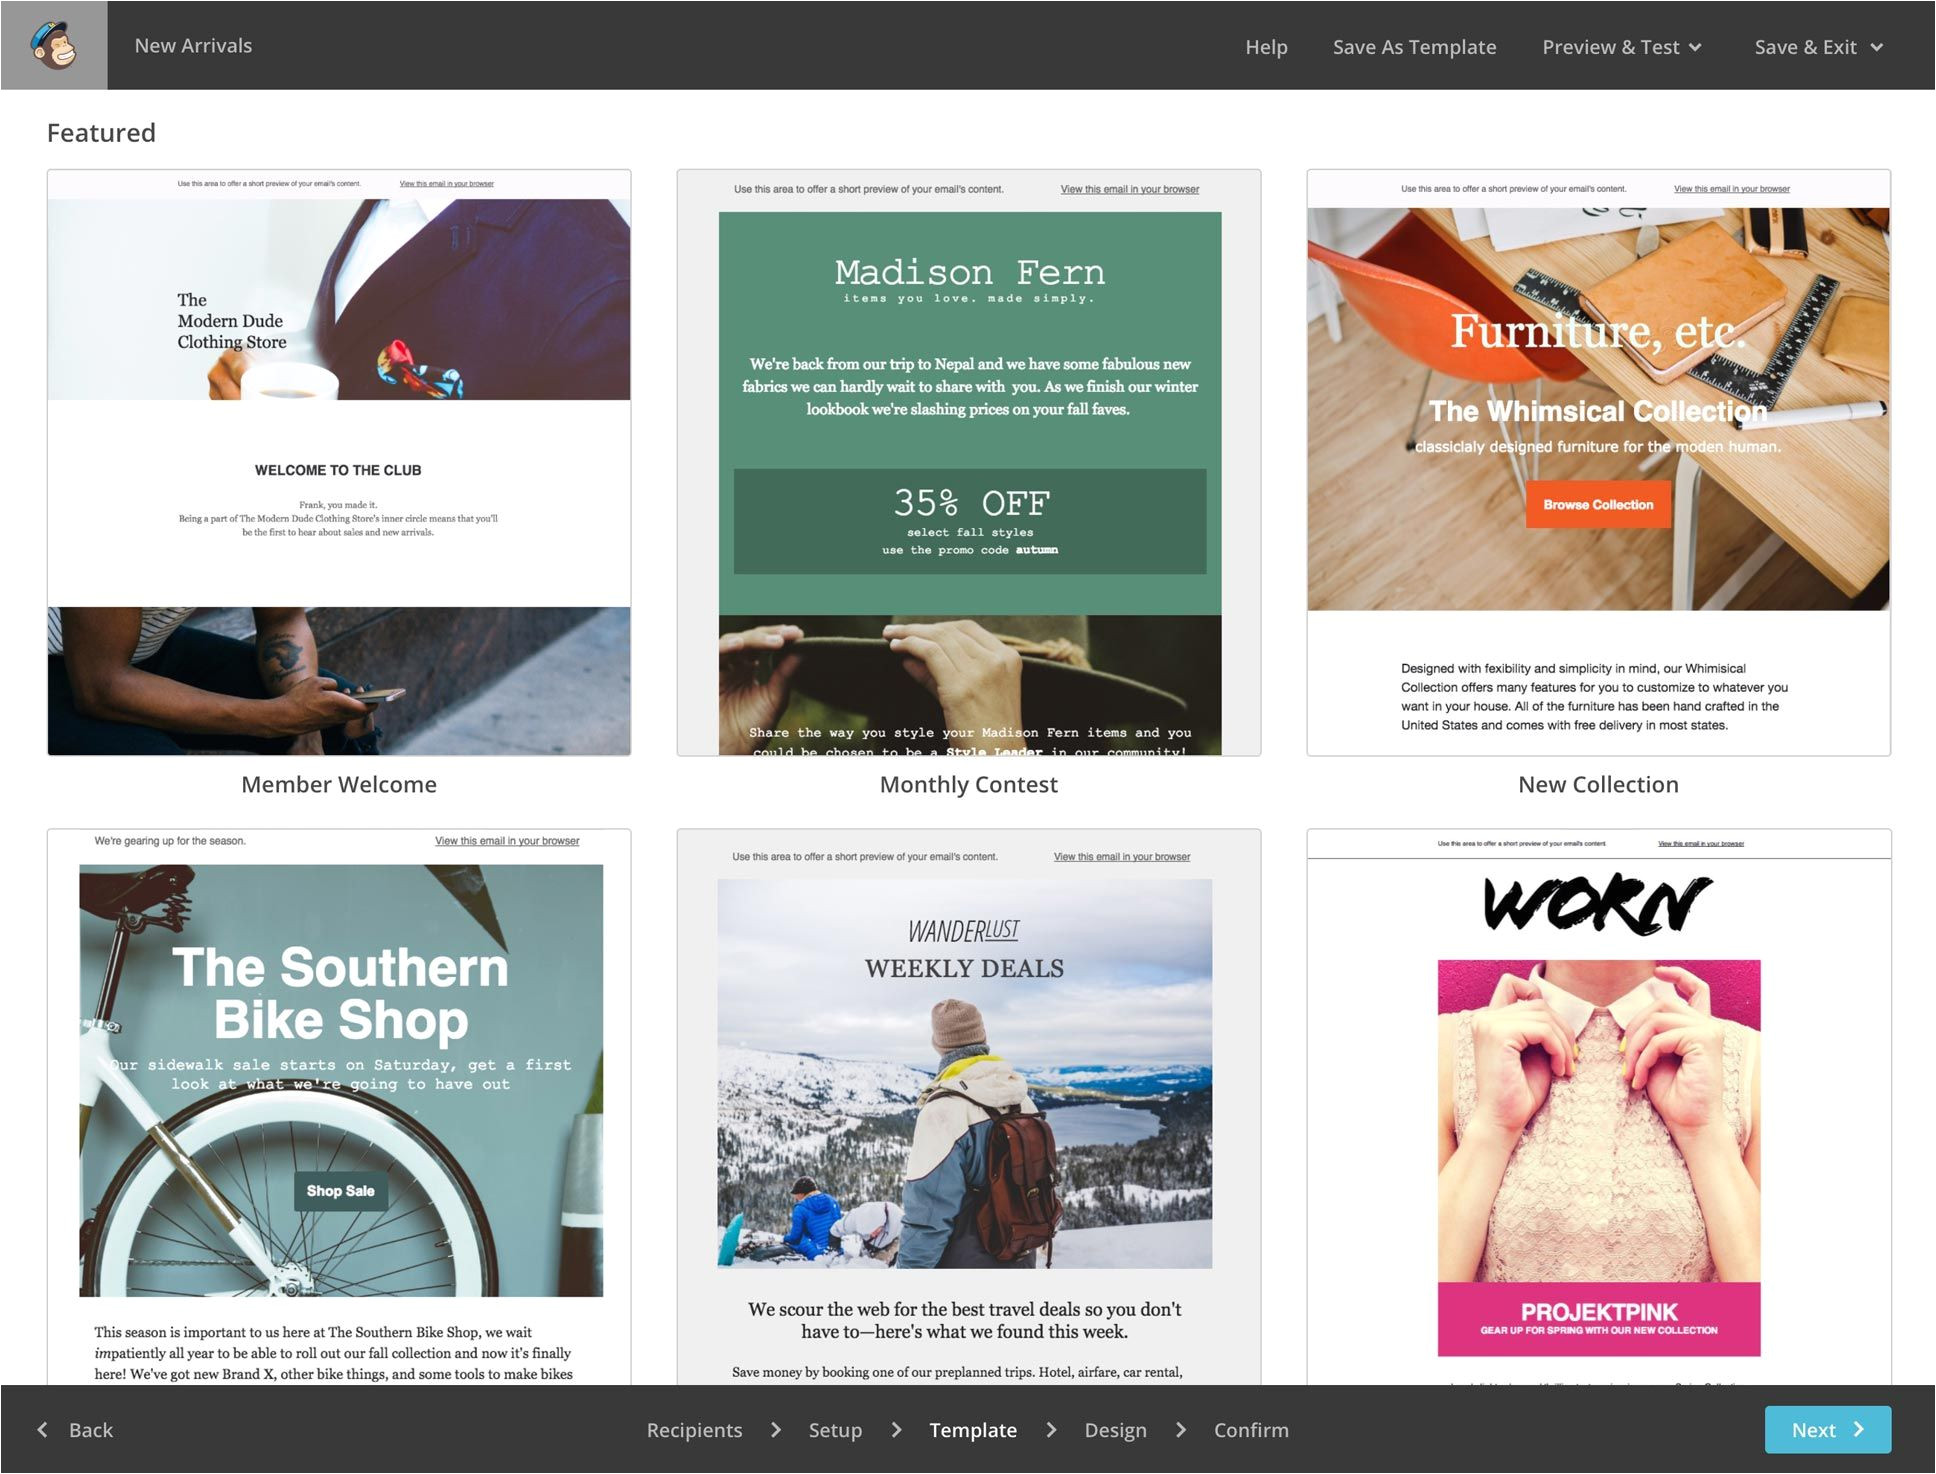 Cool Mailchimp Templates Mailchimp Makes Designing Templates for Your Business